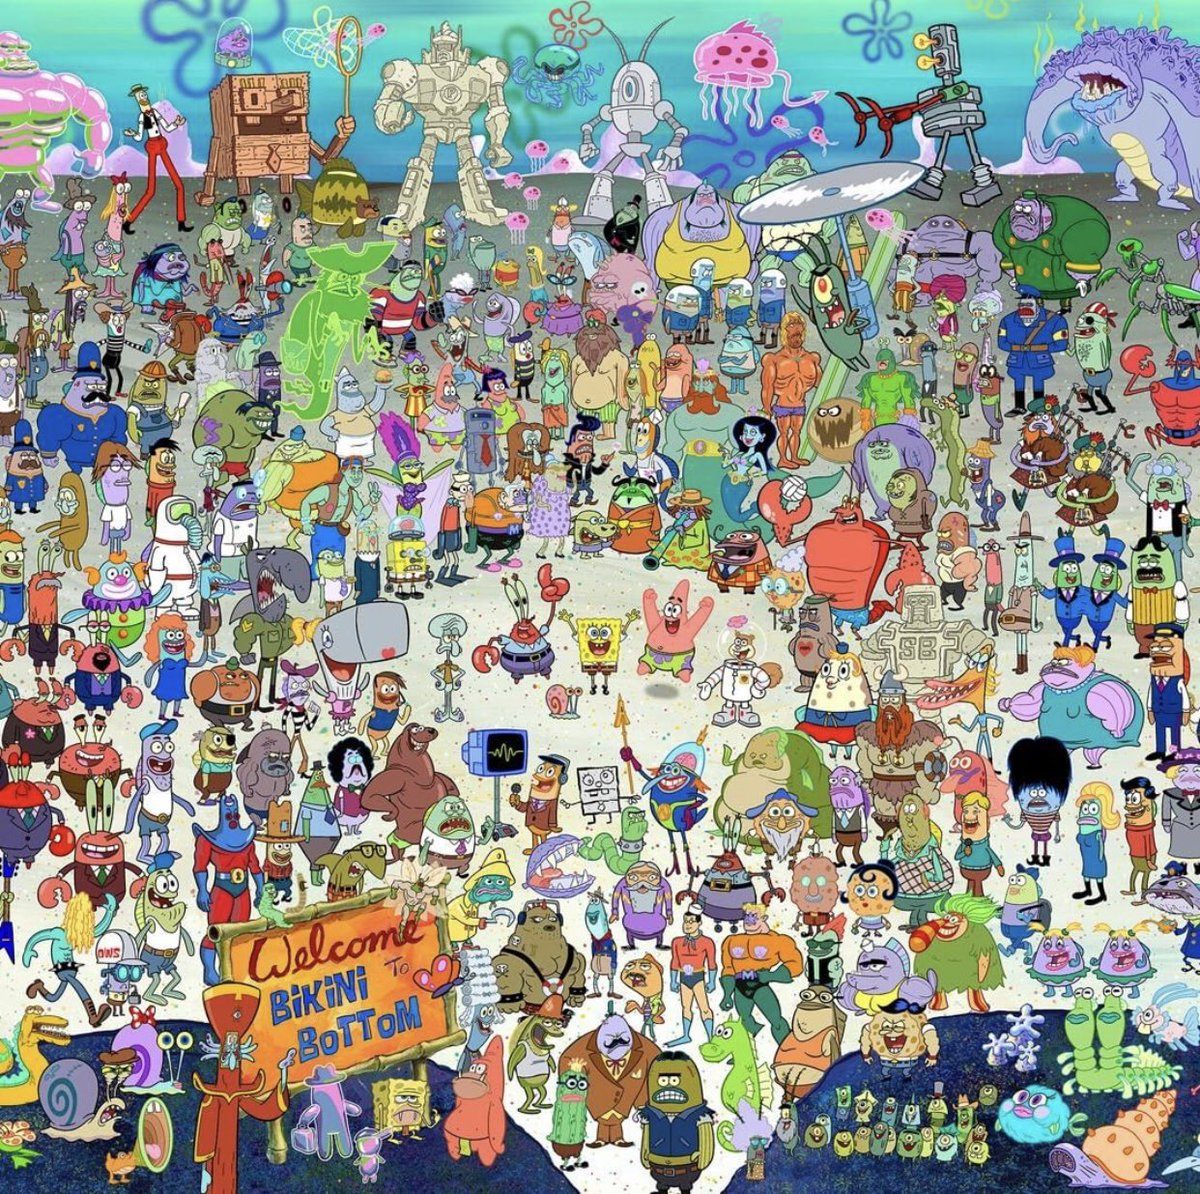 Once you actually zoom in, memories start to flood in. What a trip